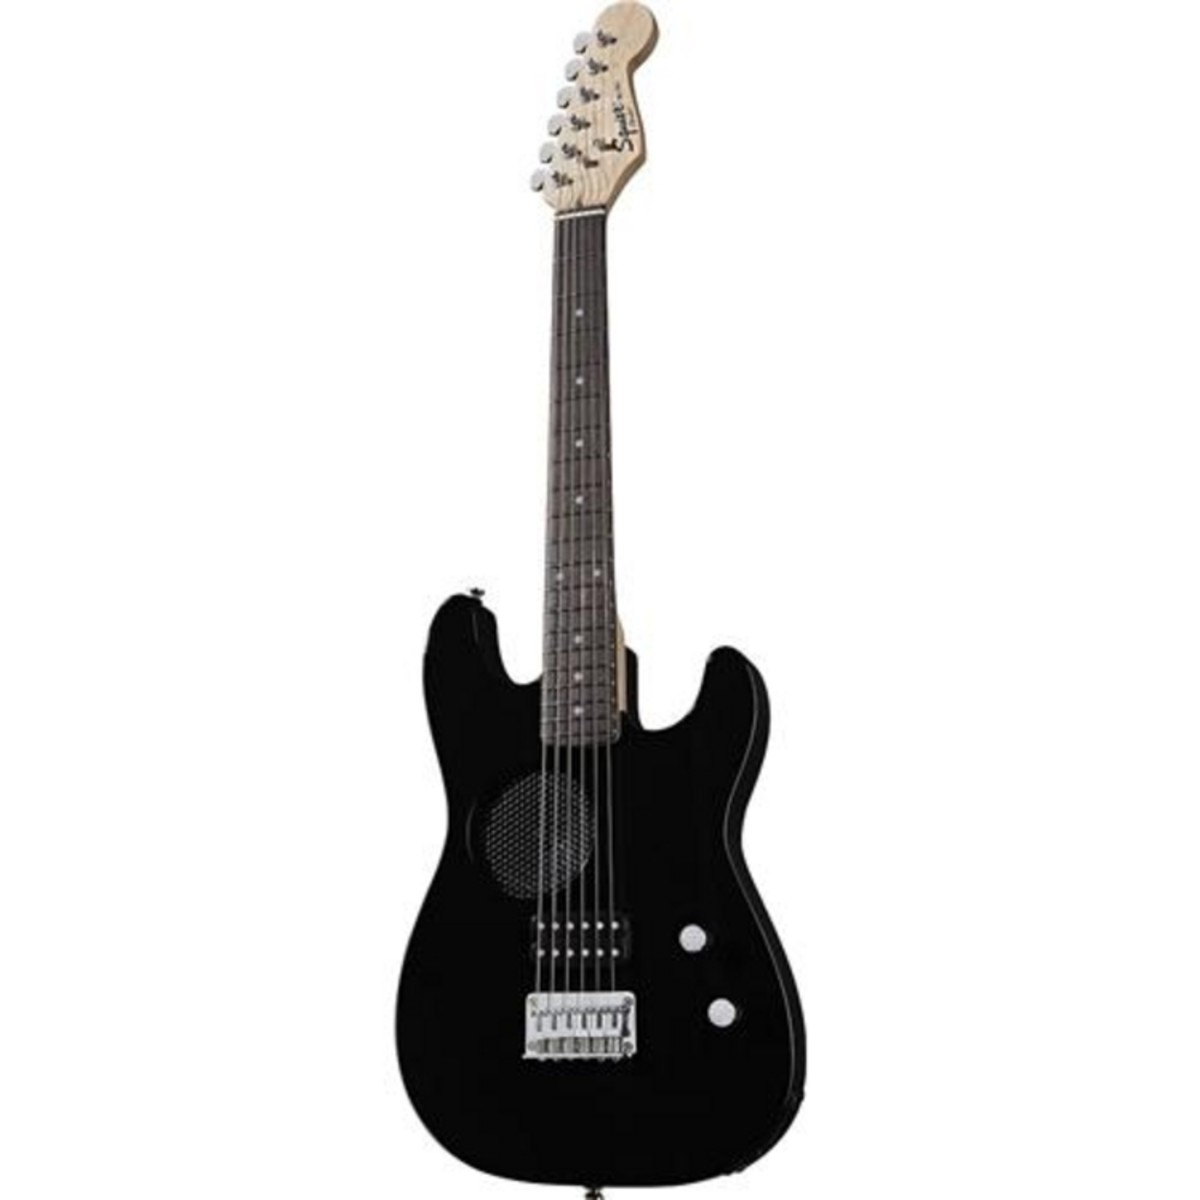 Disc Squier By Fender Mini Player Guitar Built In Amp Rw Black Behringer Strat Squire Wire Diagram 0300105506 Loading Zoom